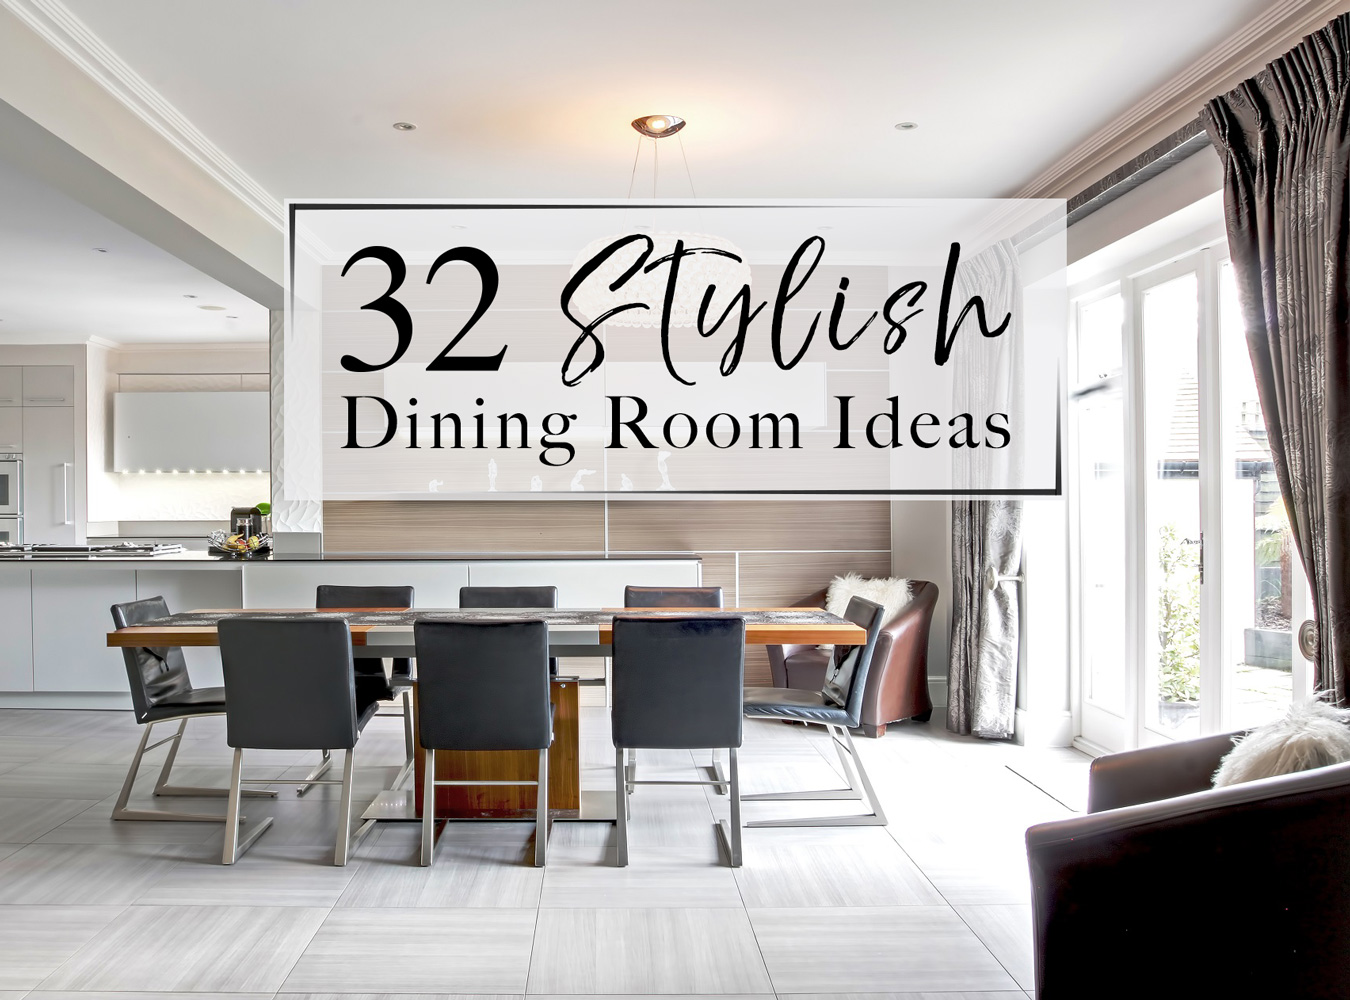 32 Stylish Dining Room Decor Ideas to Impress your Guests - The LuxPad